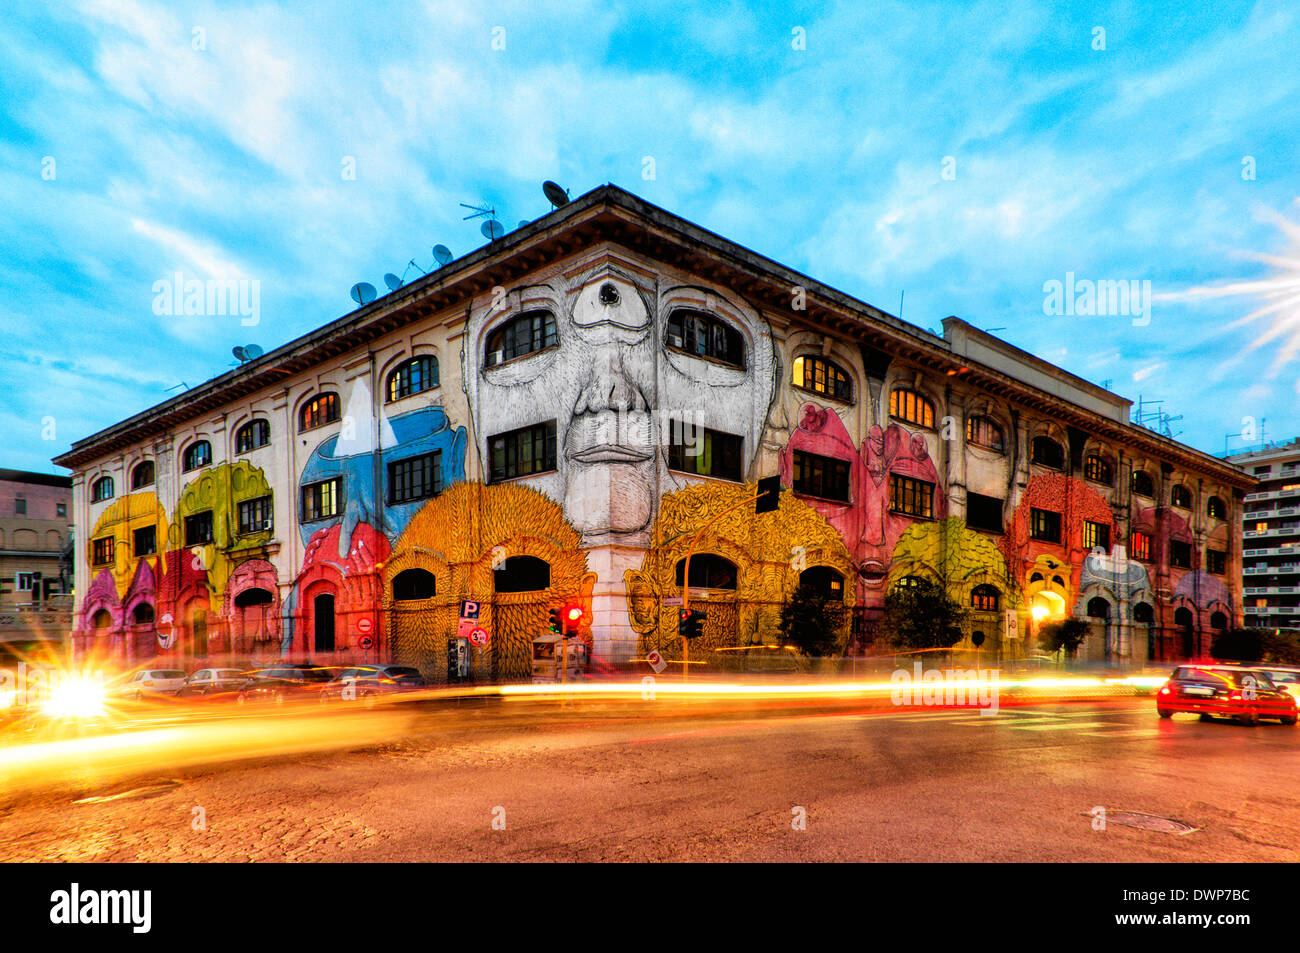 Street art by renowned artist Blu in Via del Porto Fluviale, Rome Italy - Stock Image